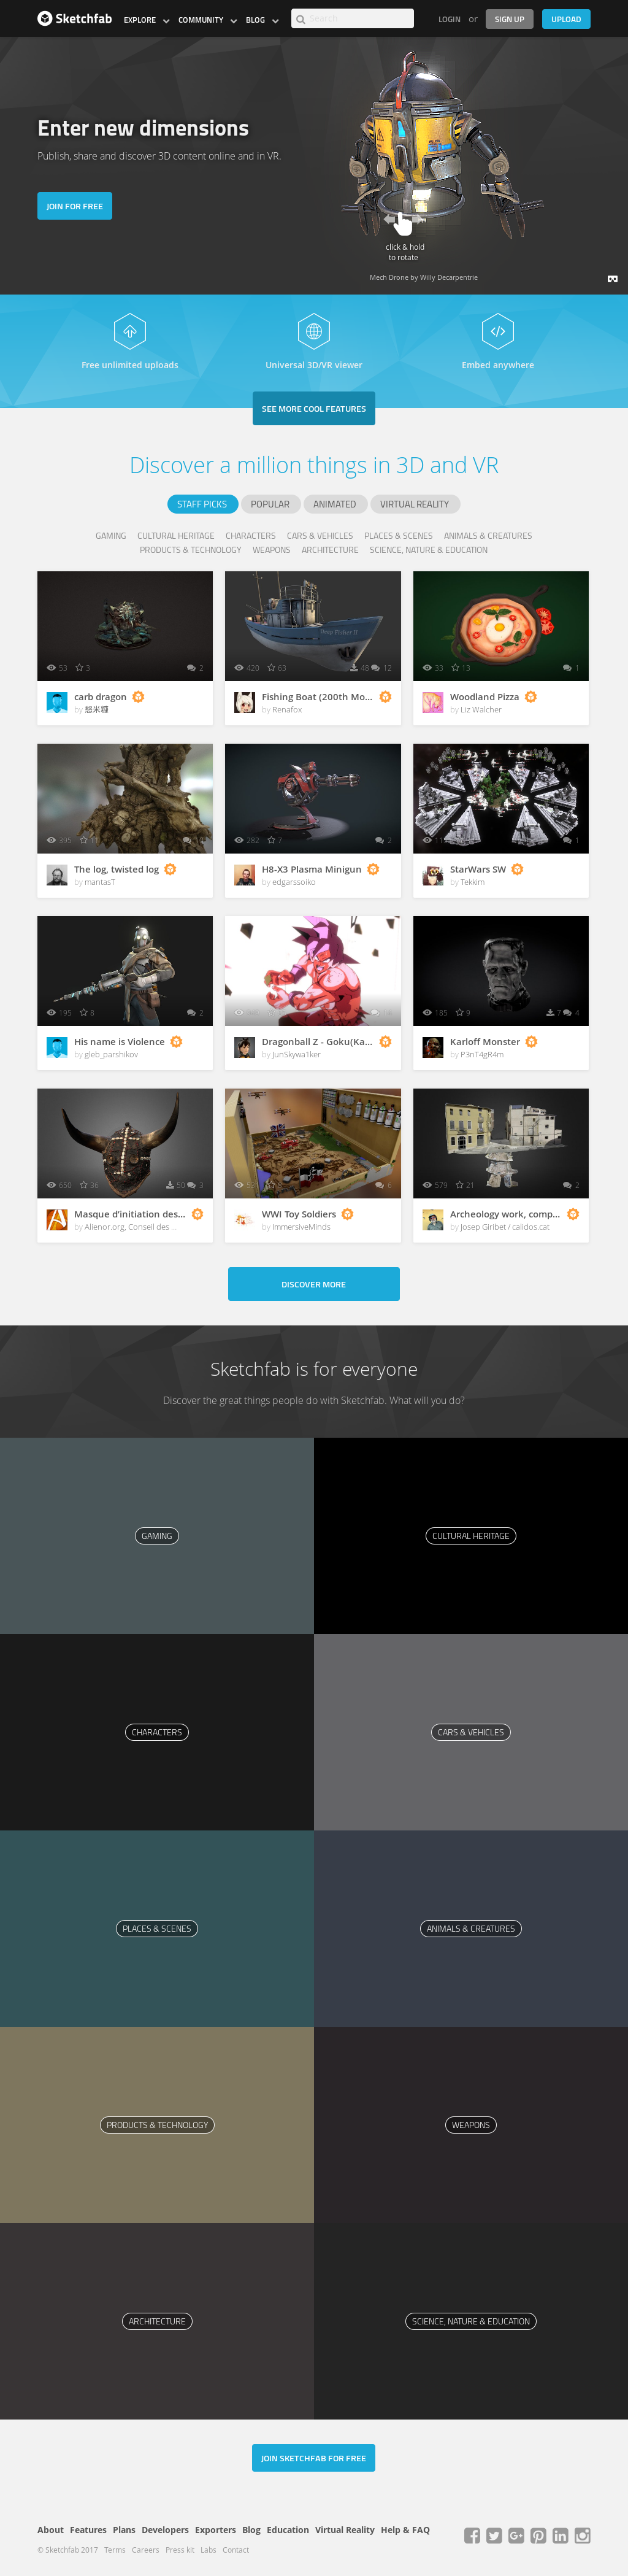 Sketchfab Competitors, Revenue and Employees - Owler Company